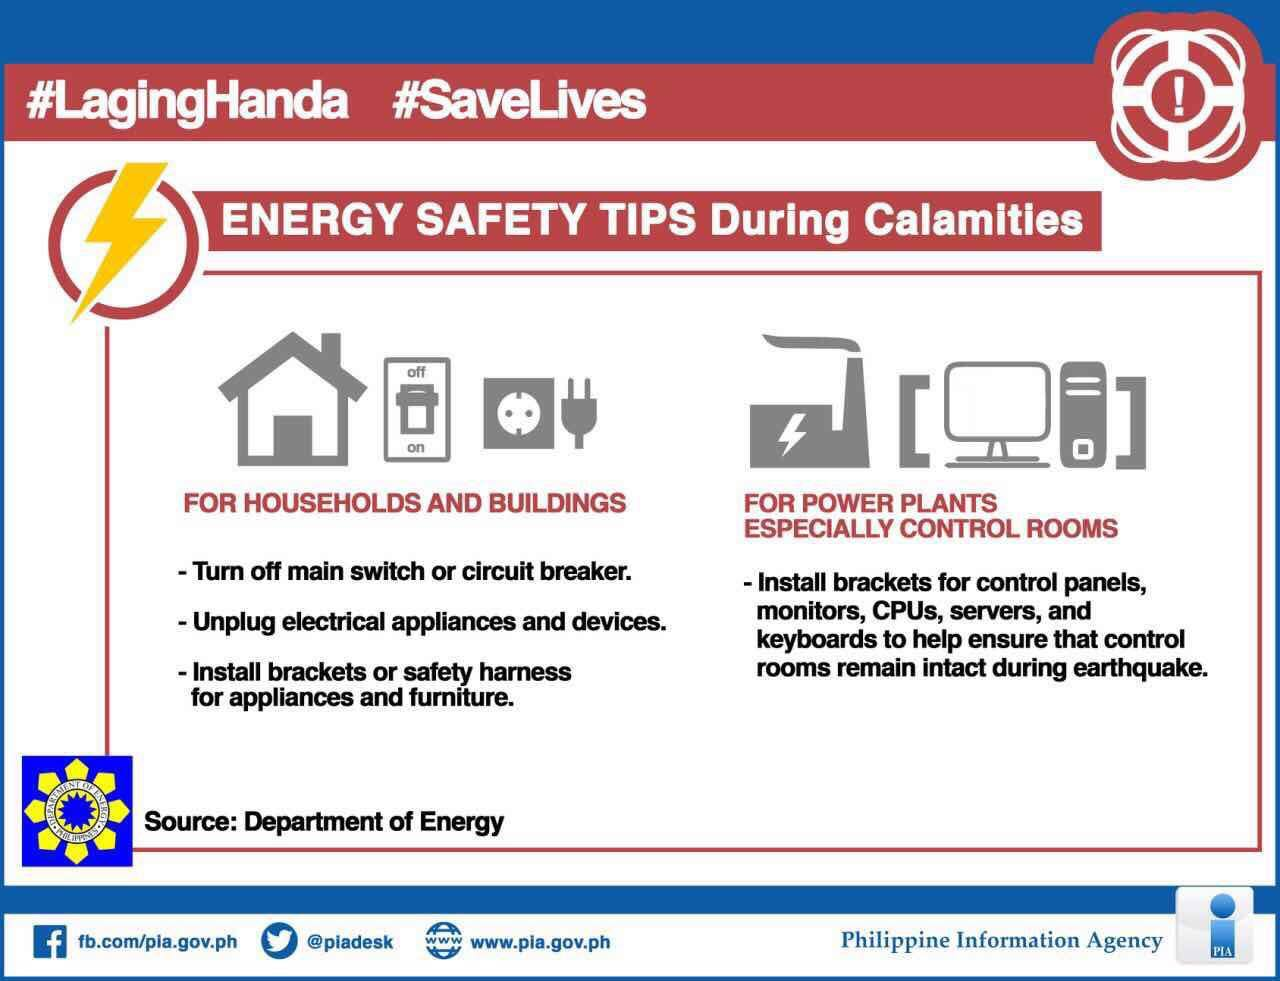 The Department of Energy (DOE) on Friday issued tips on the safe use of electrical appliances during times of calamities. (Photo: PIA-Bataan/Facebook)